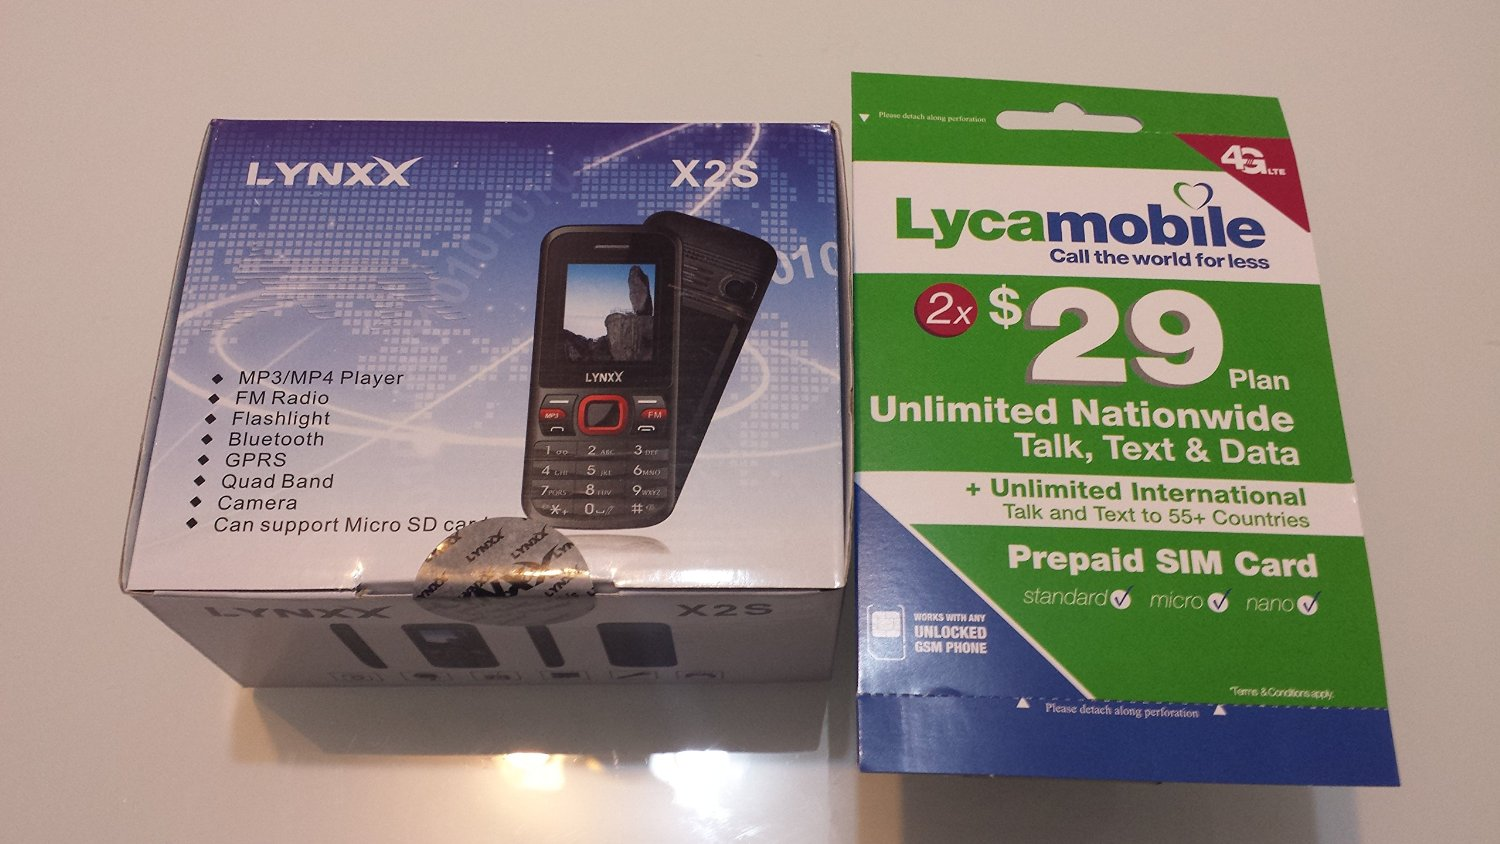 Lynxx X2S Unlocked Dual SIM Quad Band Cell Phone with LYCAMOBILE Simcard w/ MONTHS $29 PLAN